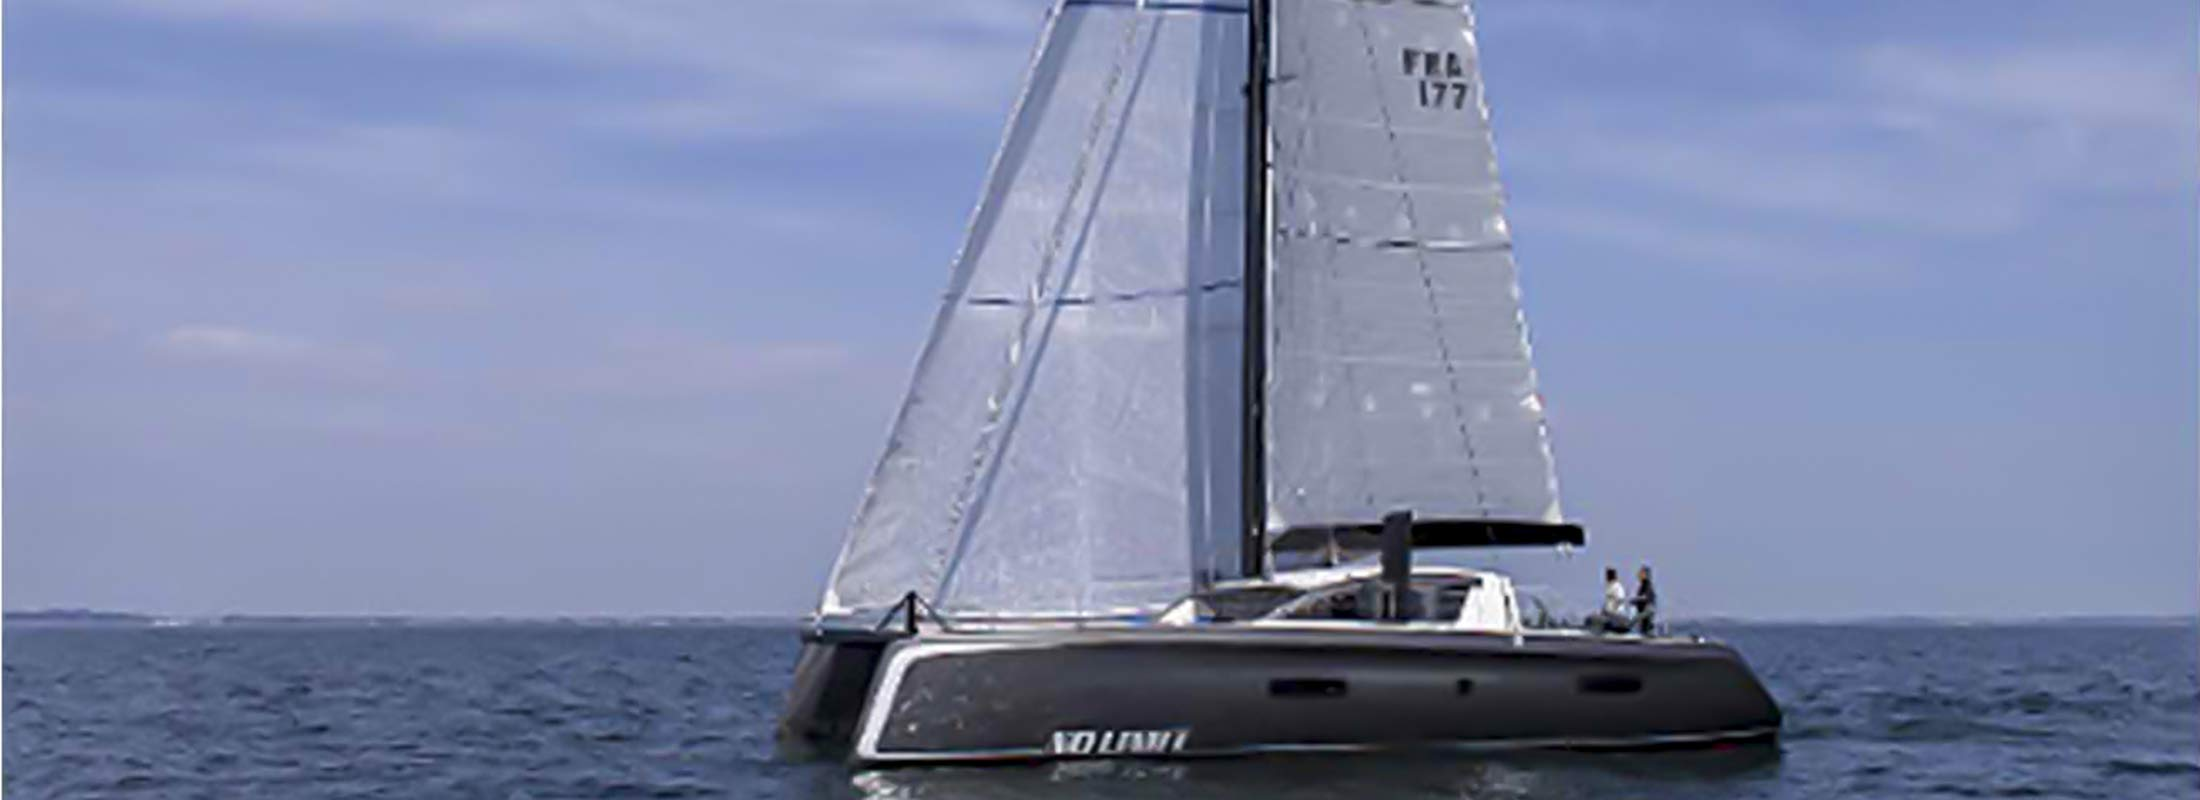 No Limit Sailing Yacht for Charter Mediterranean slider 2